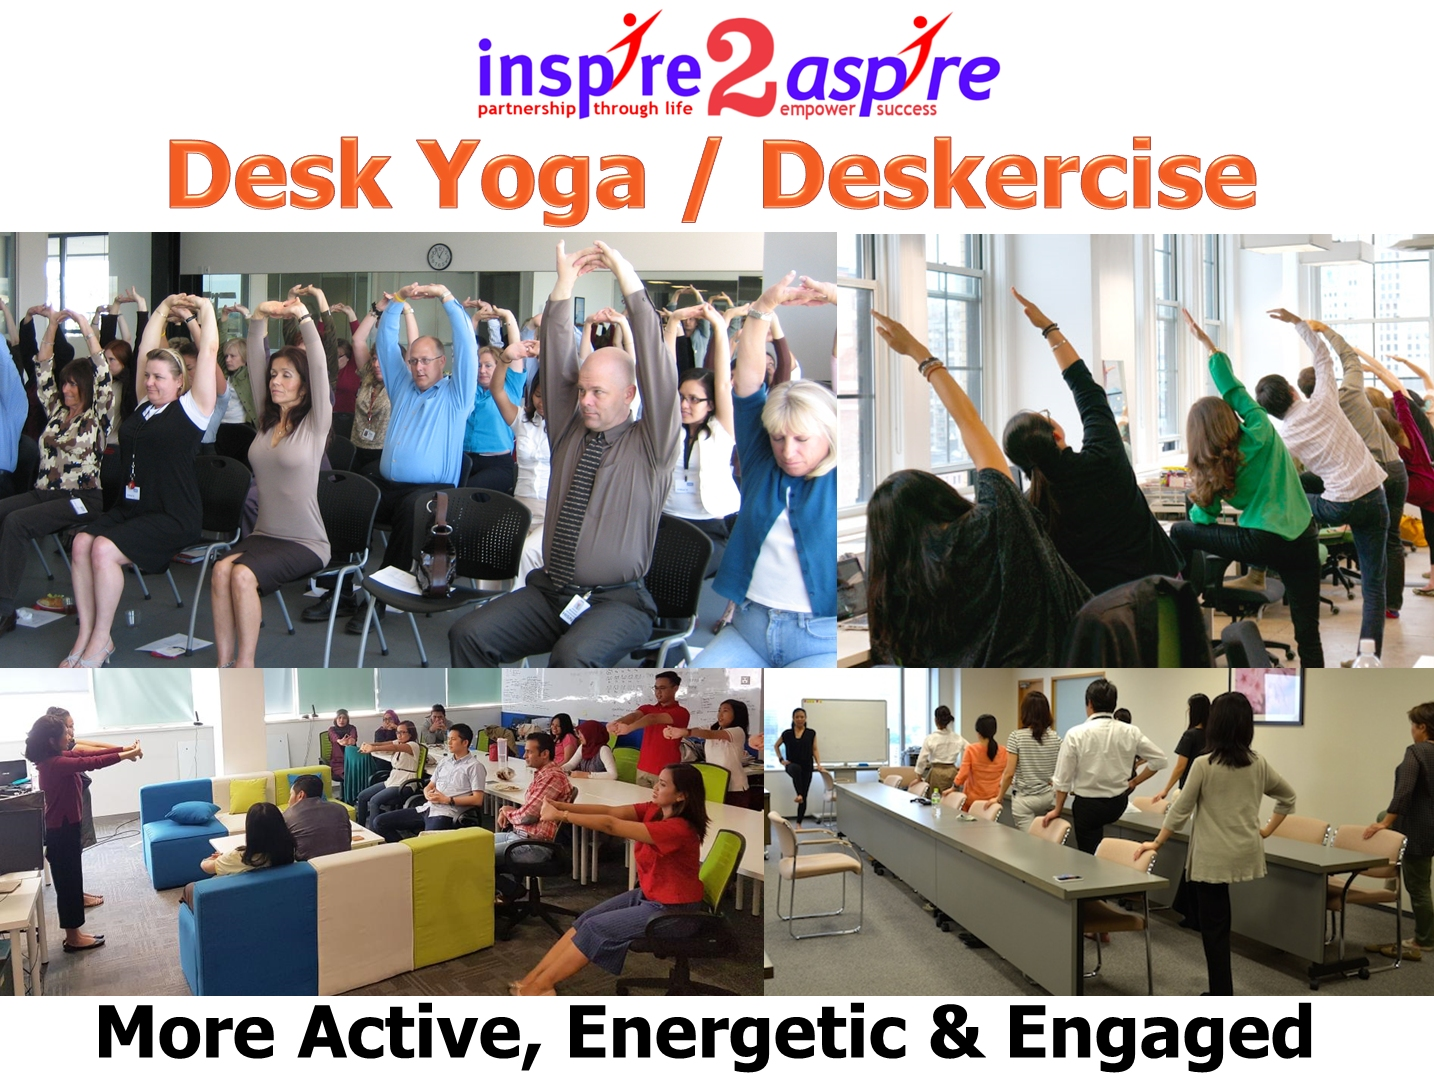 Desk Yoga / Deskercise